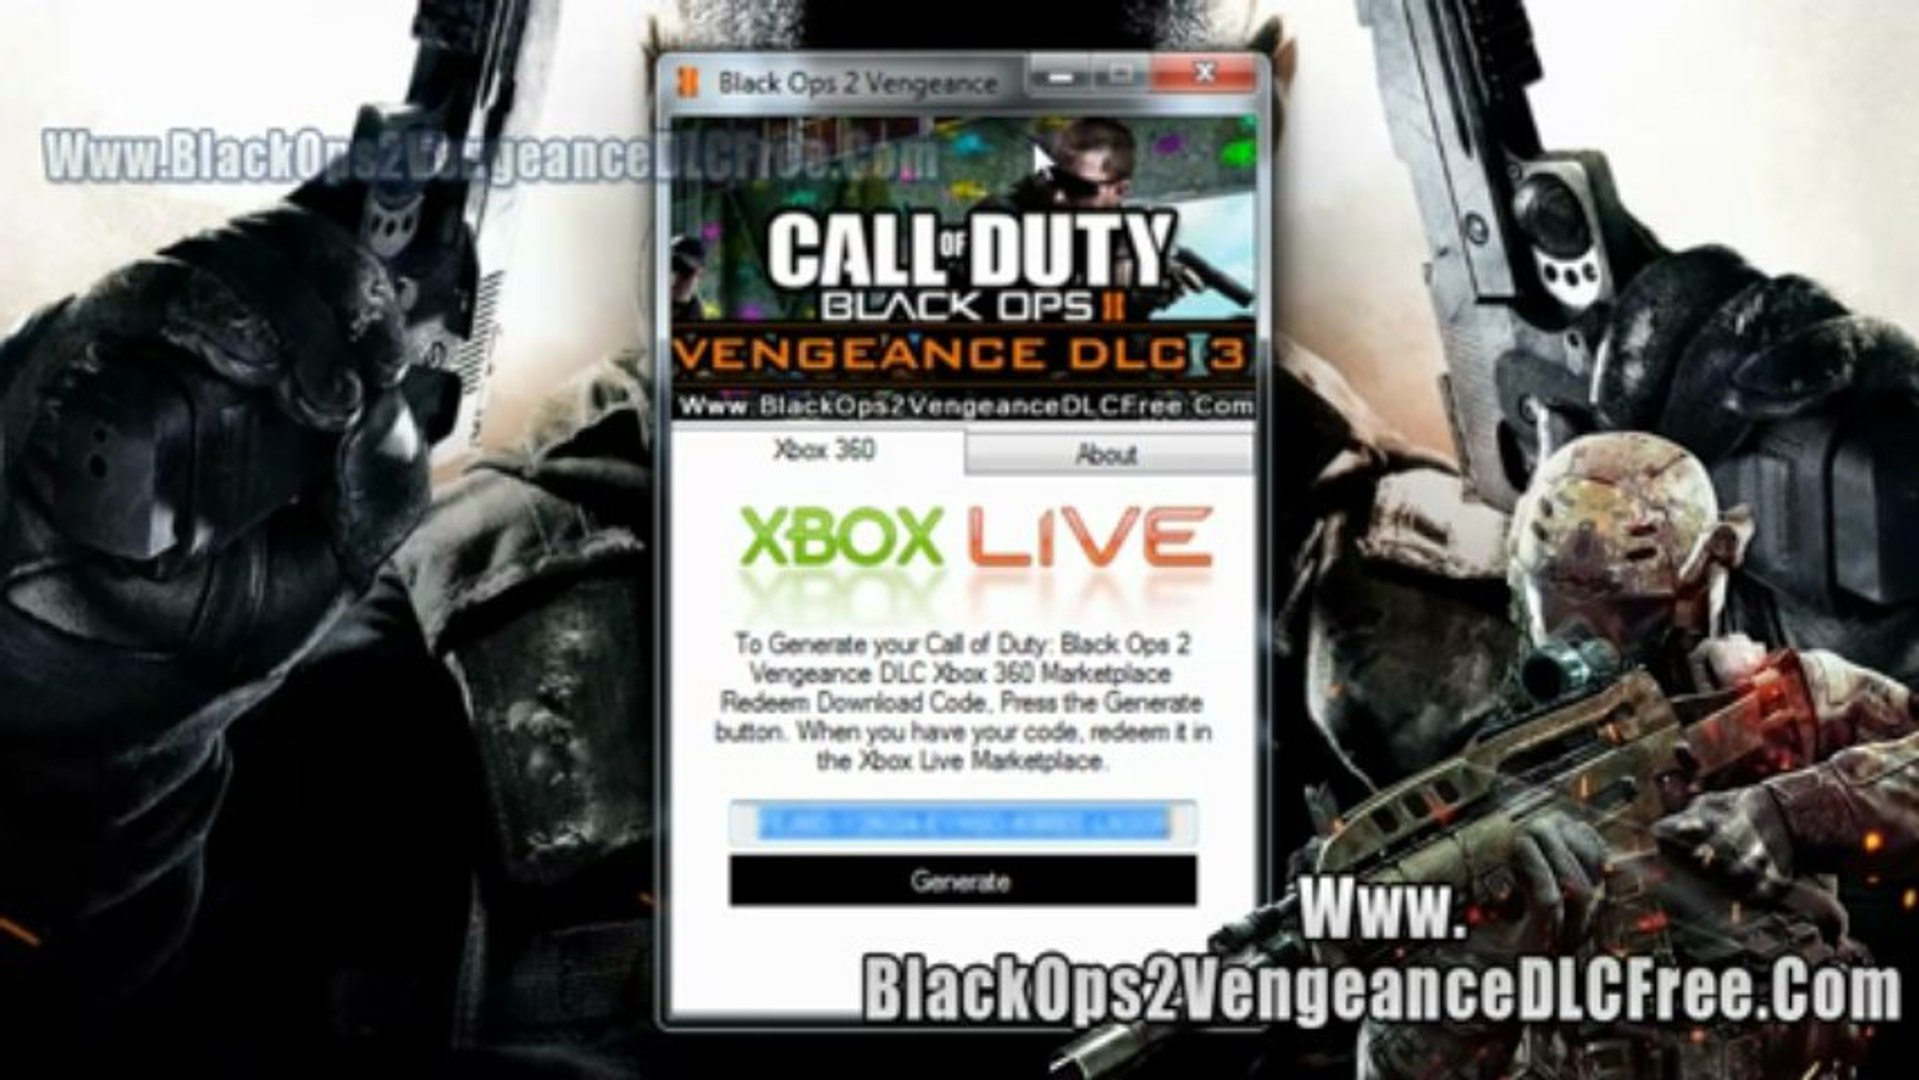 Call Of Duty Black Ops 2 Vengeance Codes Dlc Free Video Dailymotion